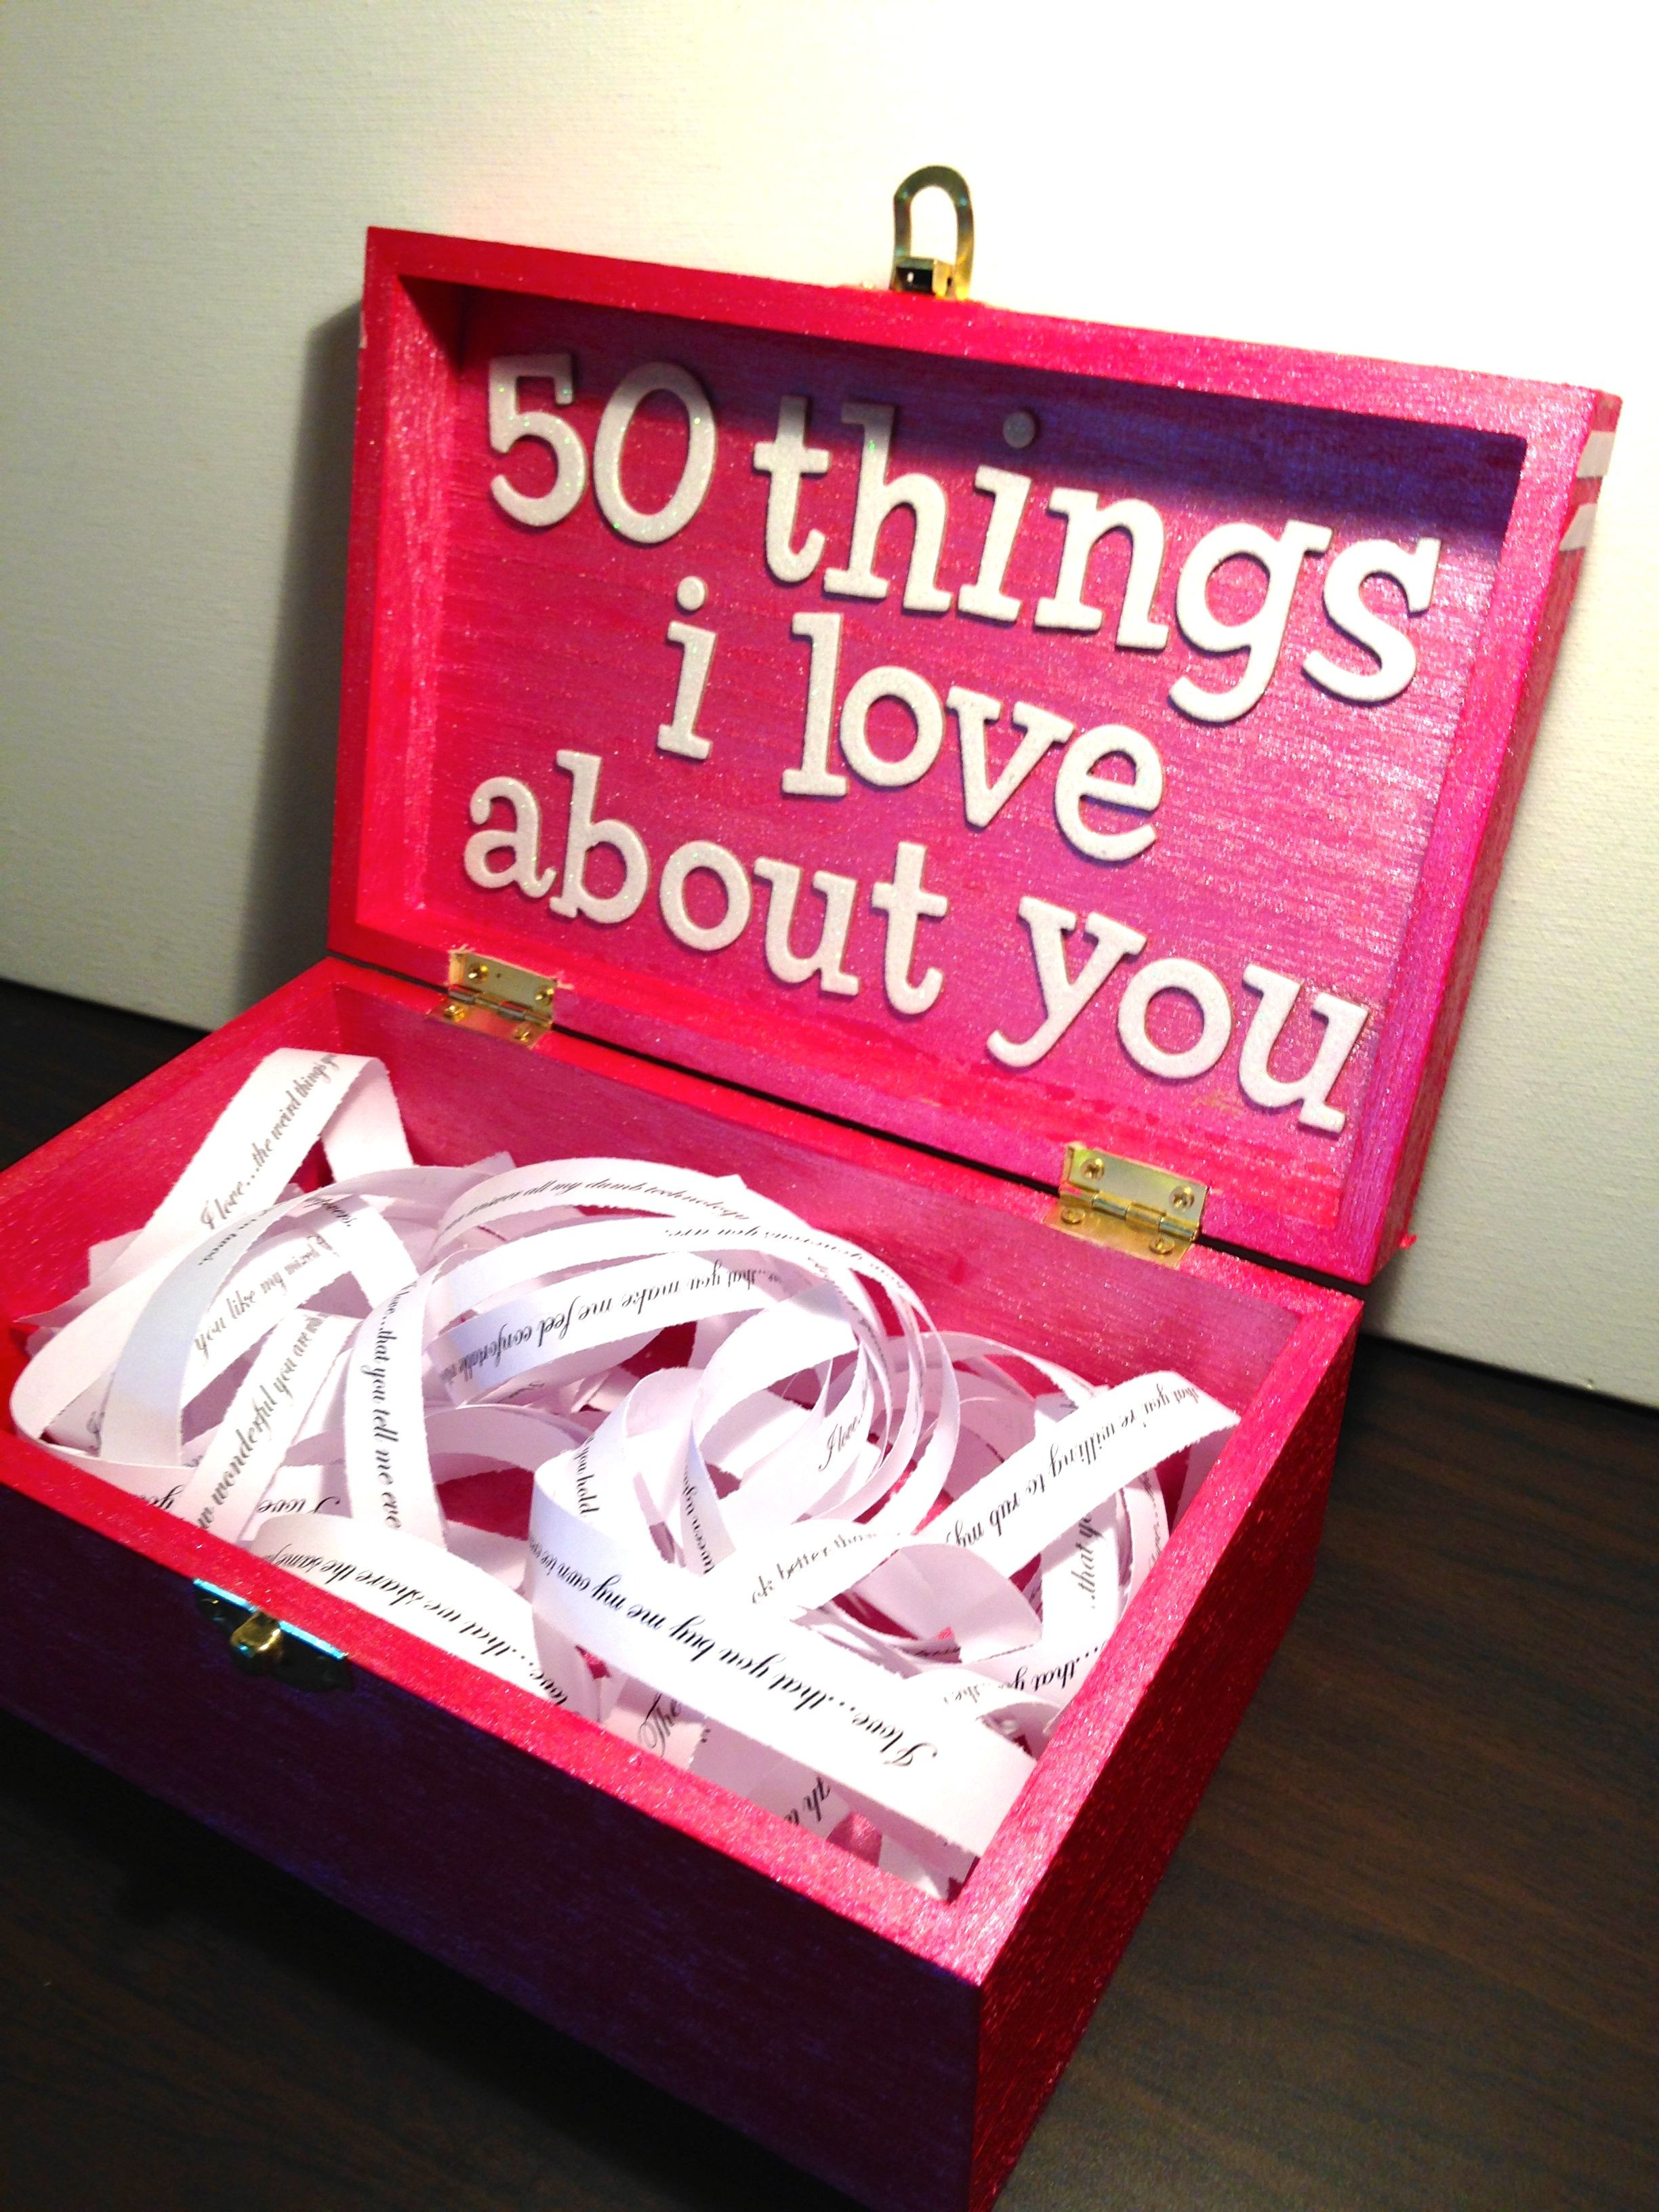 Best ideas about Gift Ideas For Fiance . Save or Pin Boyfriend Girlfriend t ideas for birthday valentine Now.